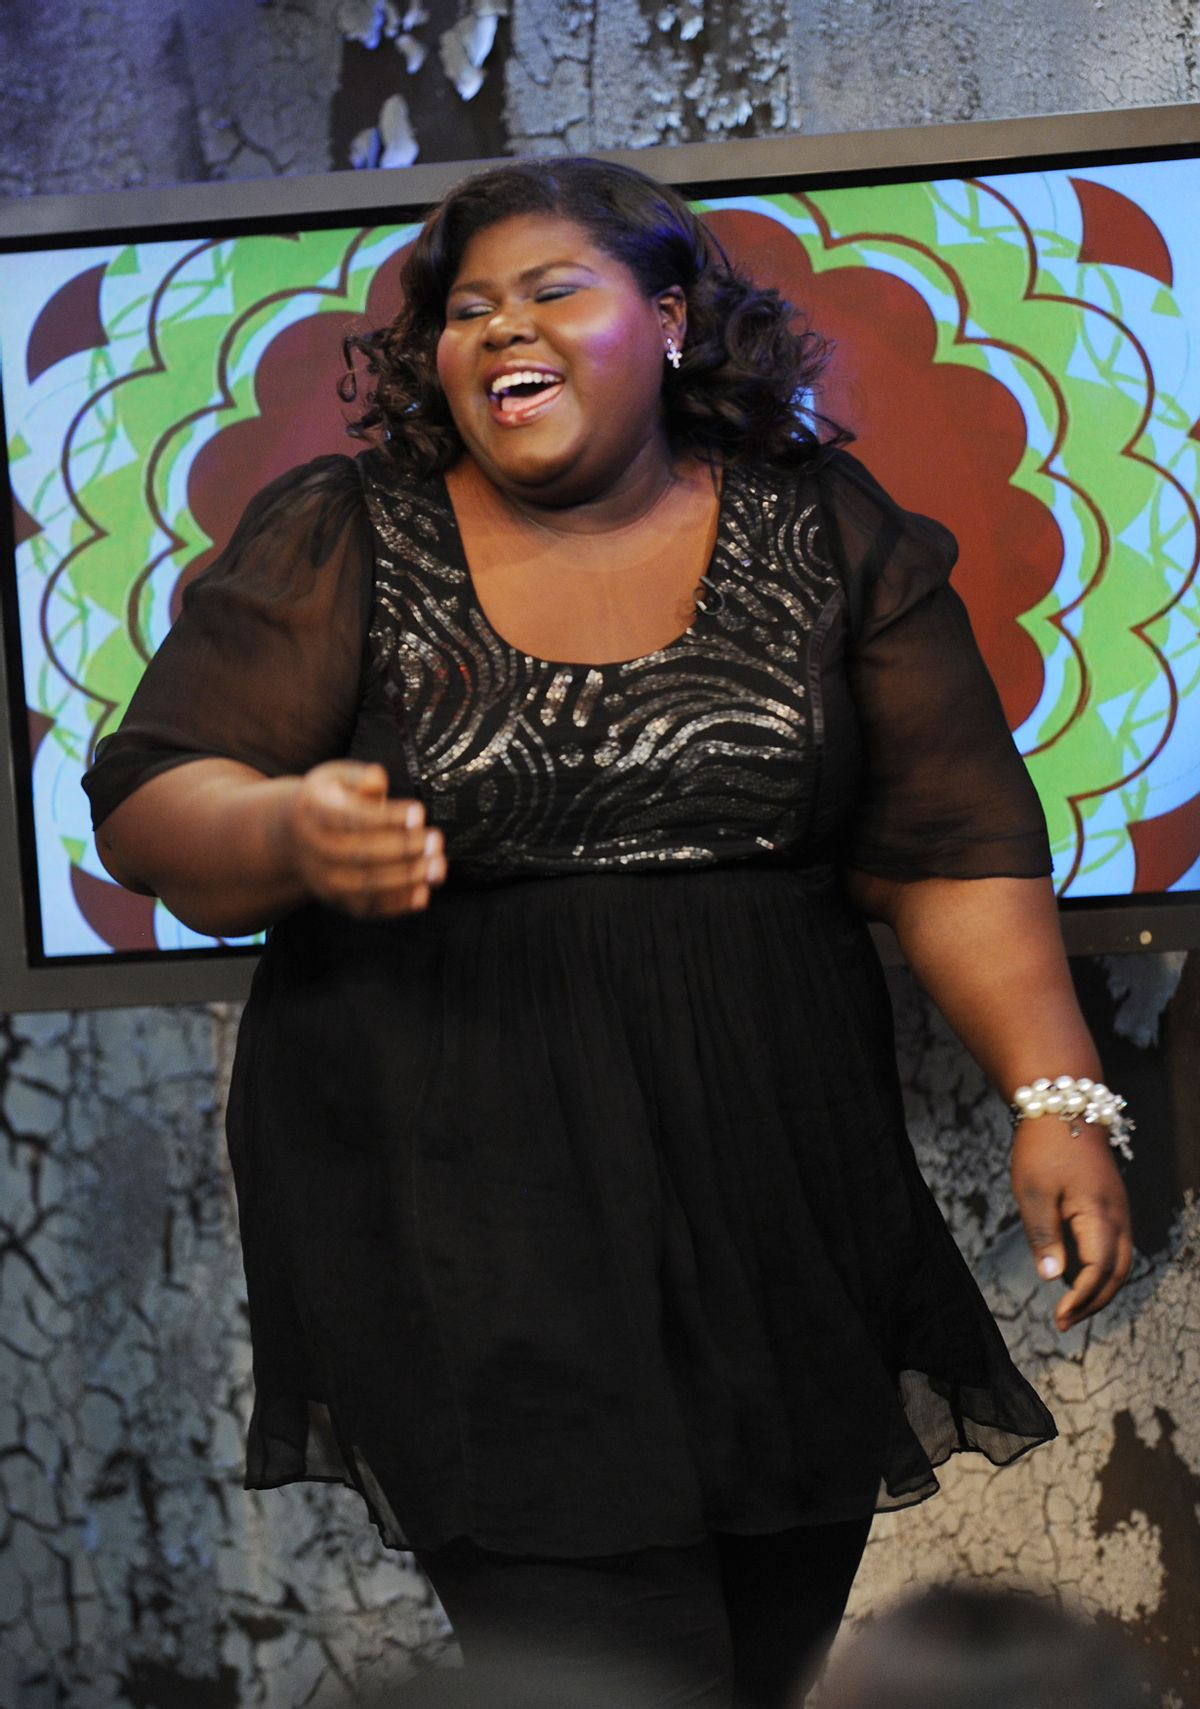 """NEW YORK, NY - NOVEMBER 4:  EXCLUSIVE  Actress Gabourey """"Gabby"""" Sidibe appears on the set of MTV's """"It's On with Alexa Chung"""" at the MTV Times Square Studios on November 4, 2009 in New York City.  (Photo by Scott Gries/PictureGroup) via AP IMAGES (Scott Gries/picturegroup Via Ap Images)"""